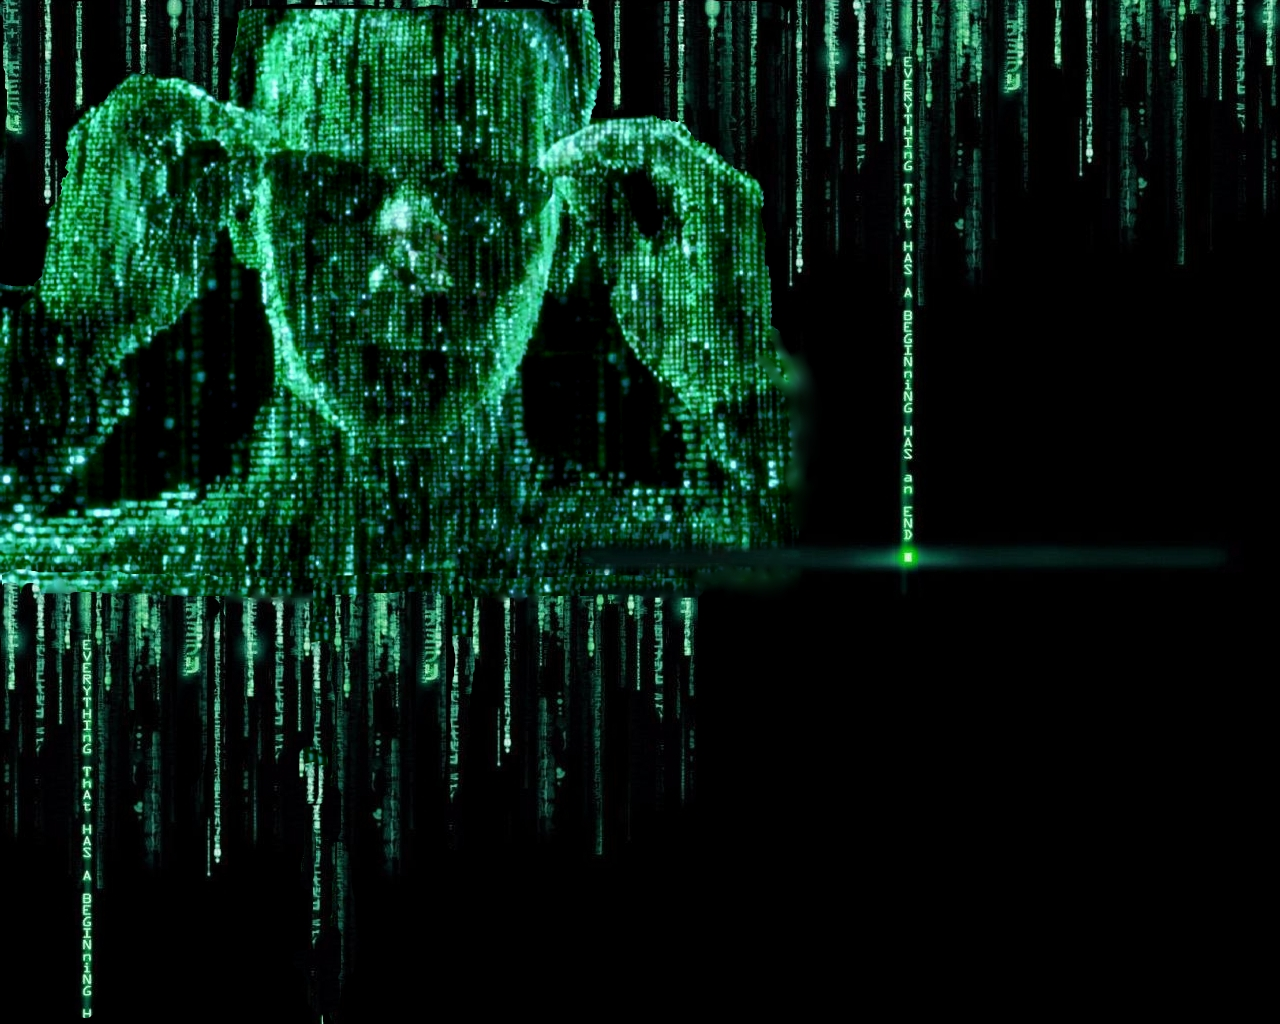 49 ] Matrix Live Wallpaper Windows 8 On WallpaperSafari